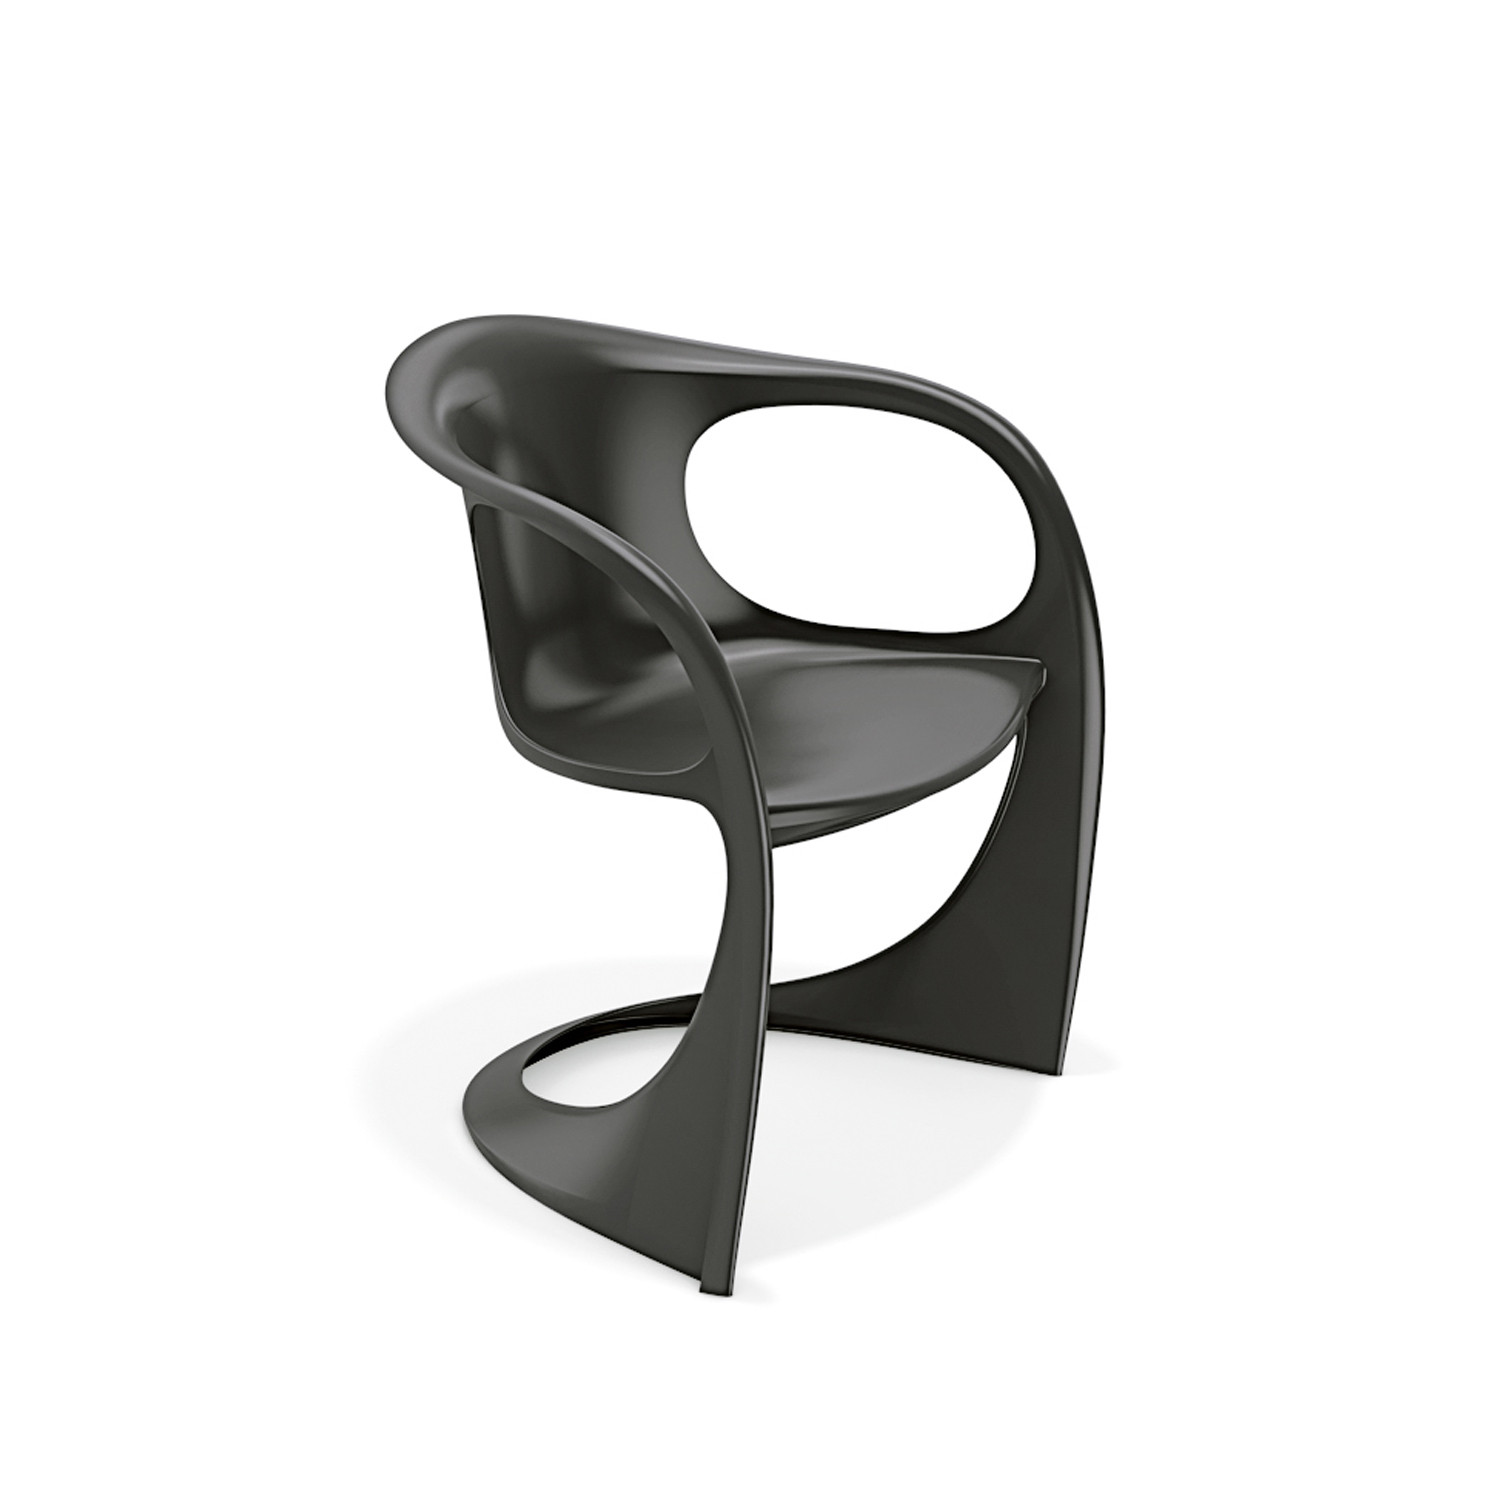 Casalino Cantilever Chair